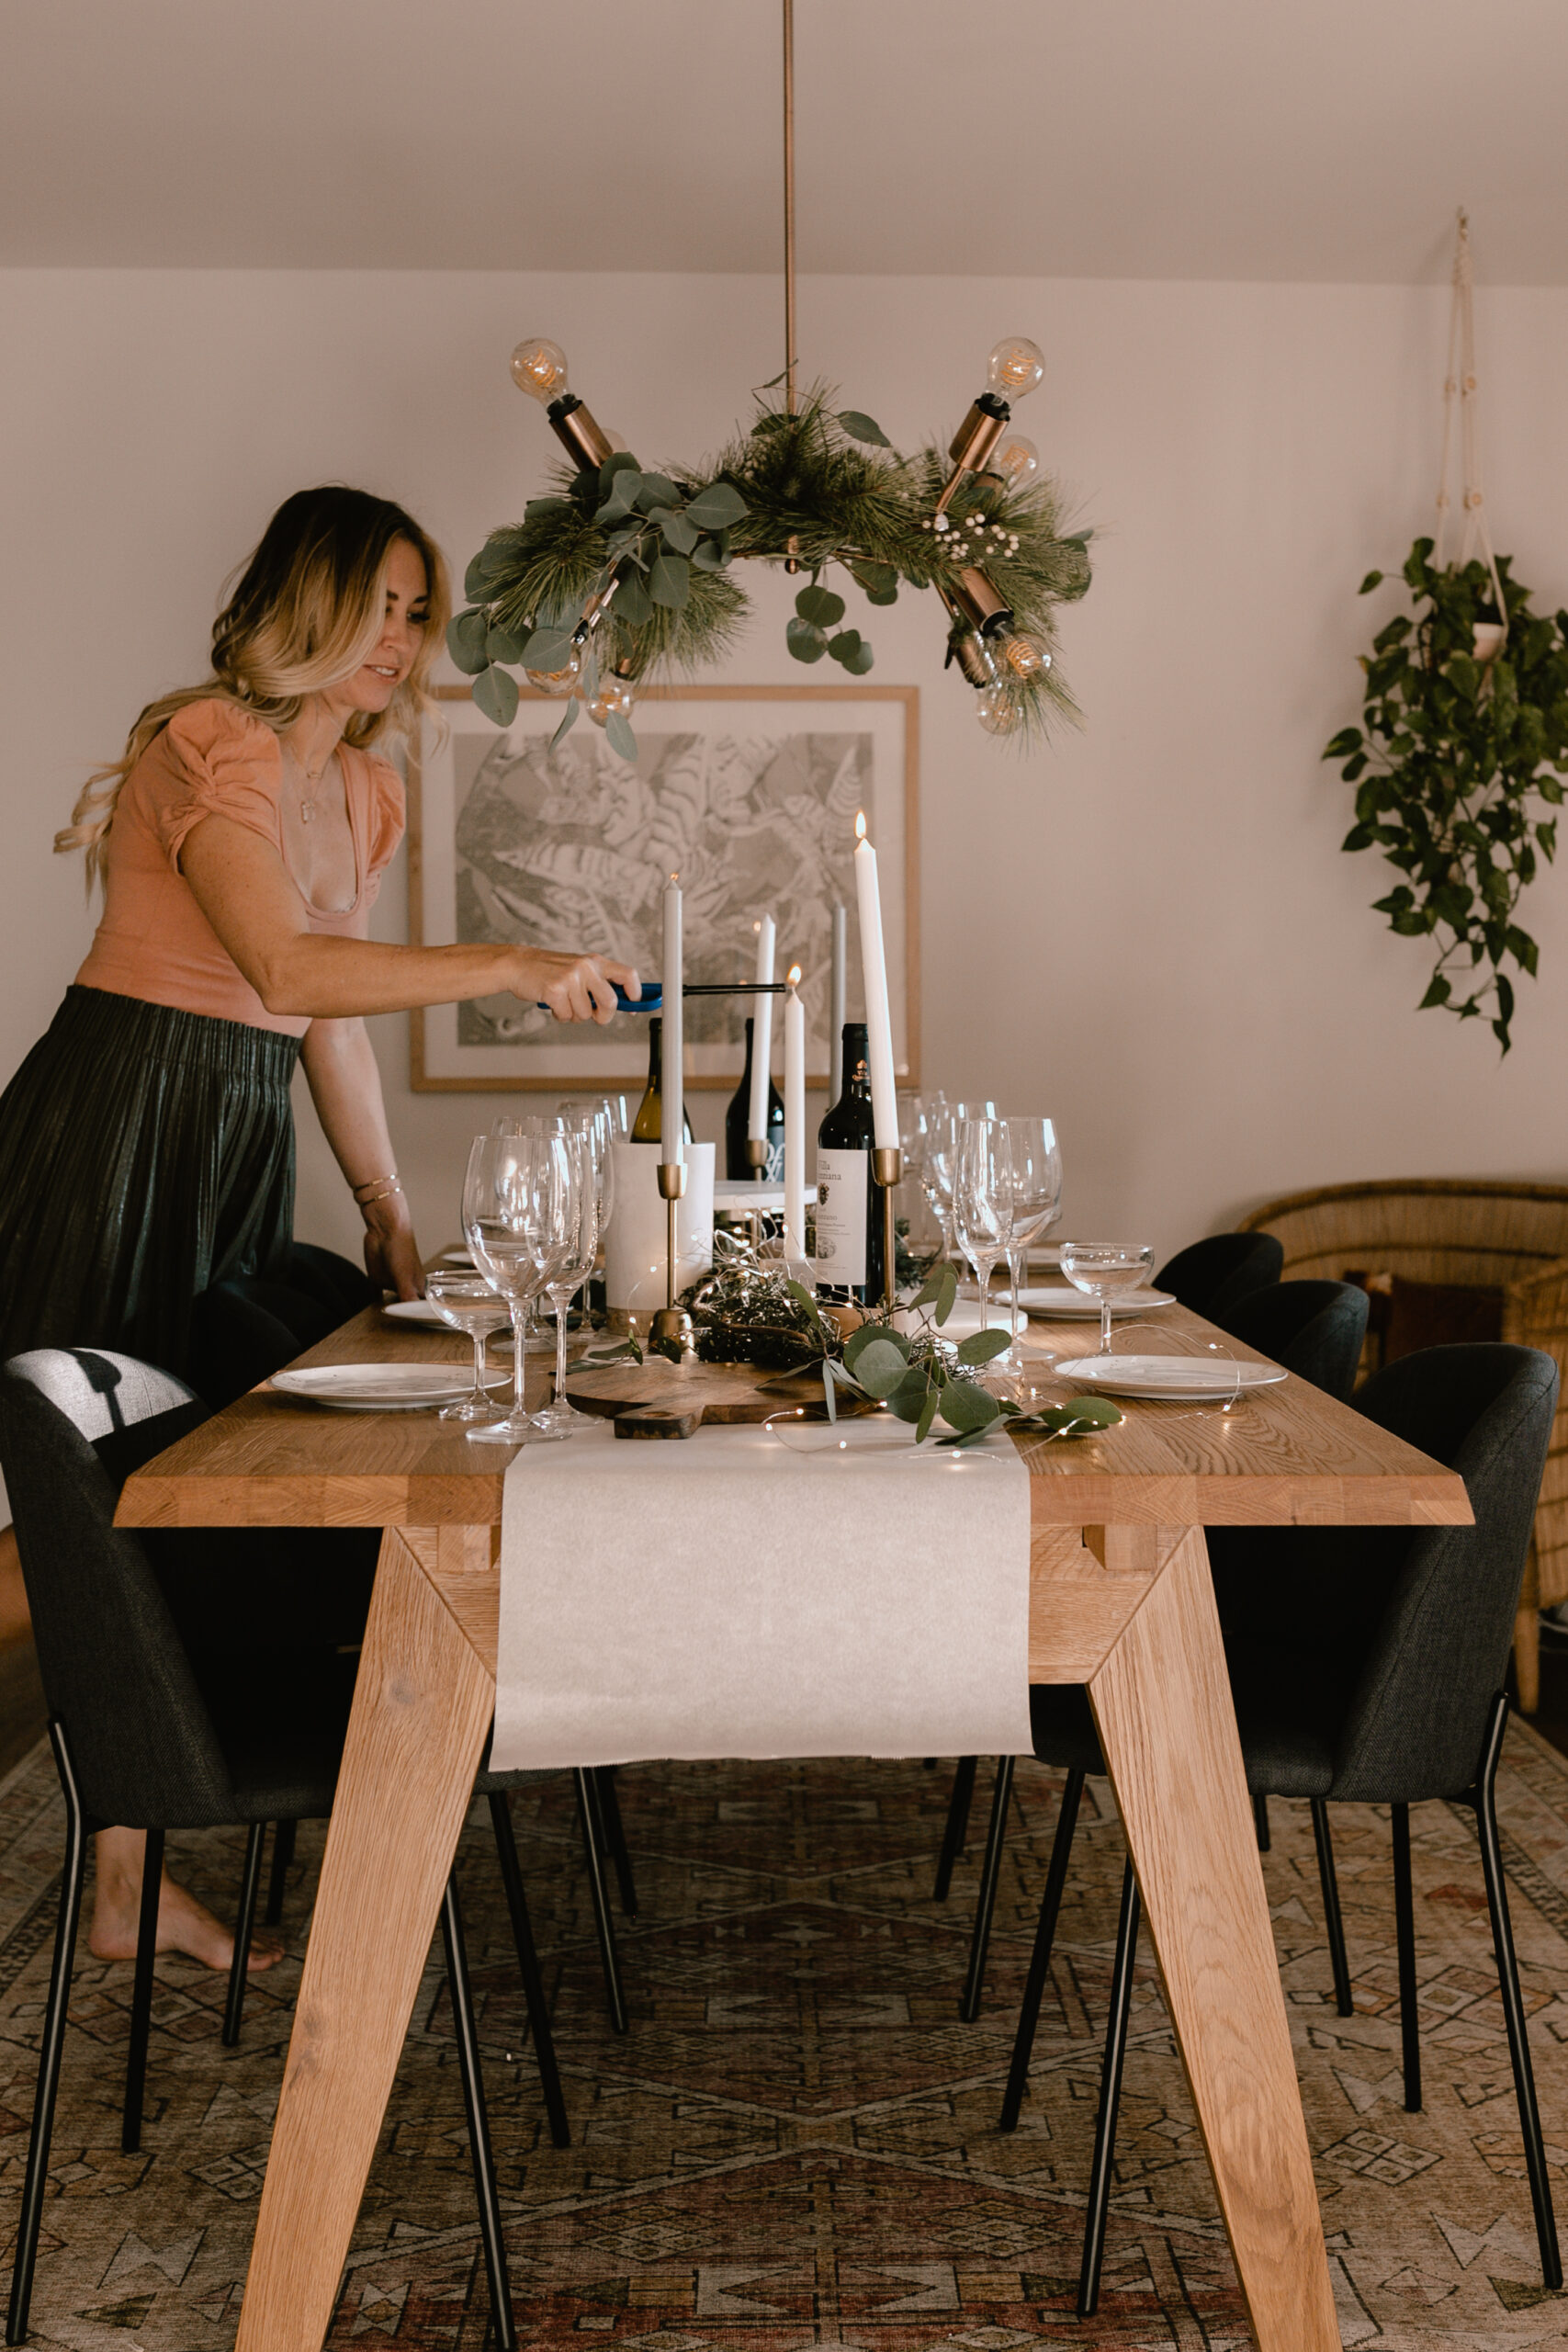 setting the table for a festive holiday gathering #holidayhome #festivegathering #holidaycharcuterie #winetasting